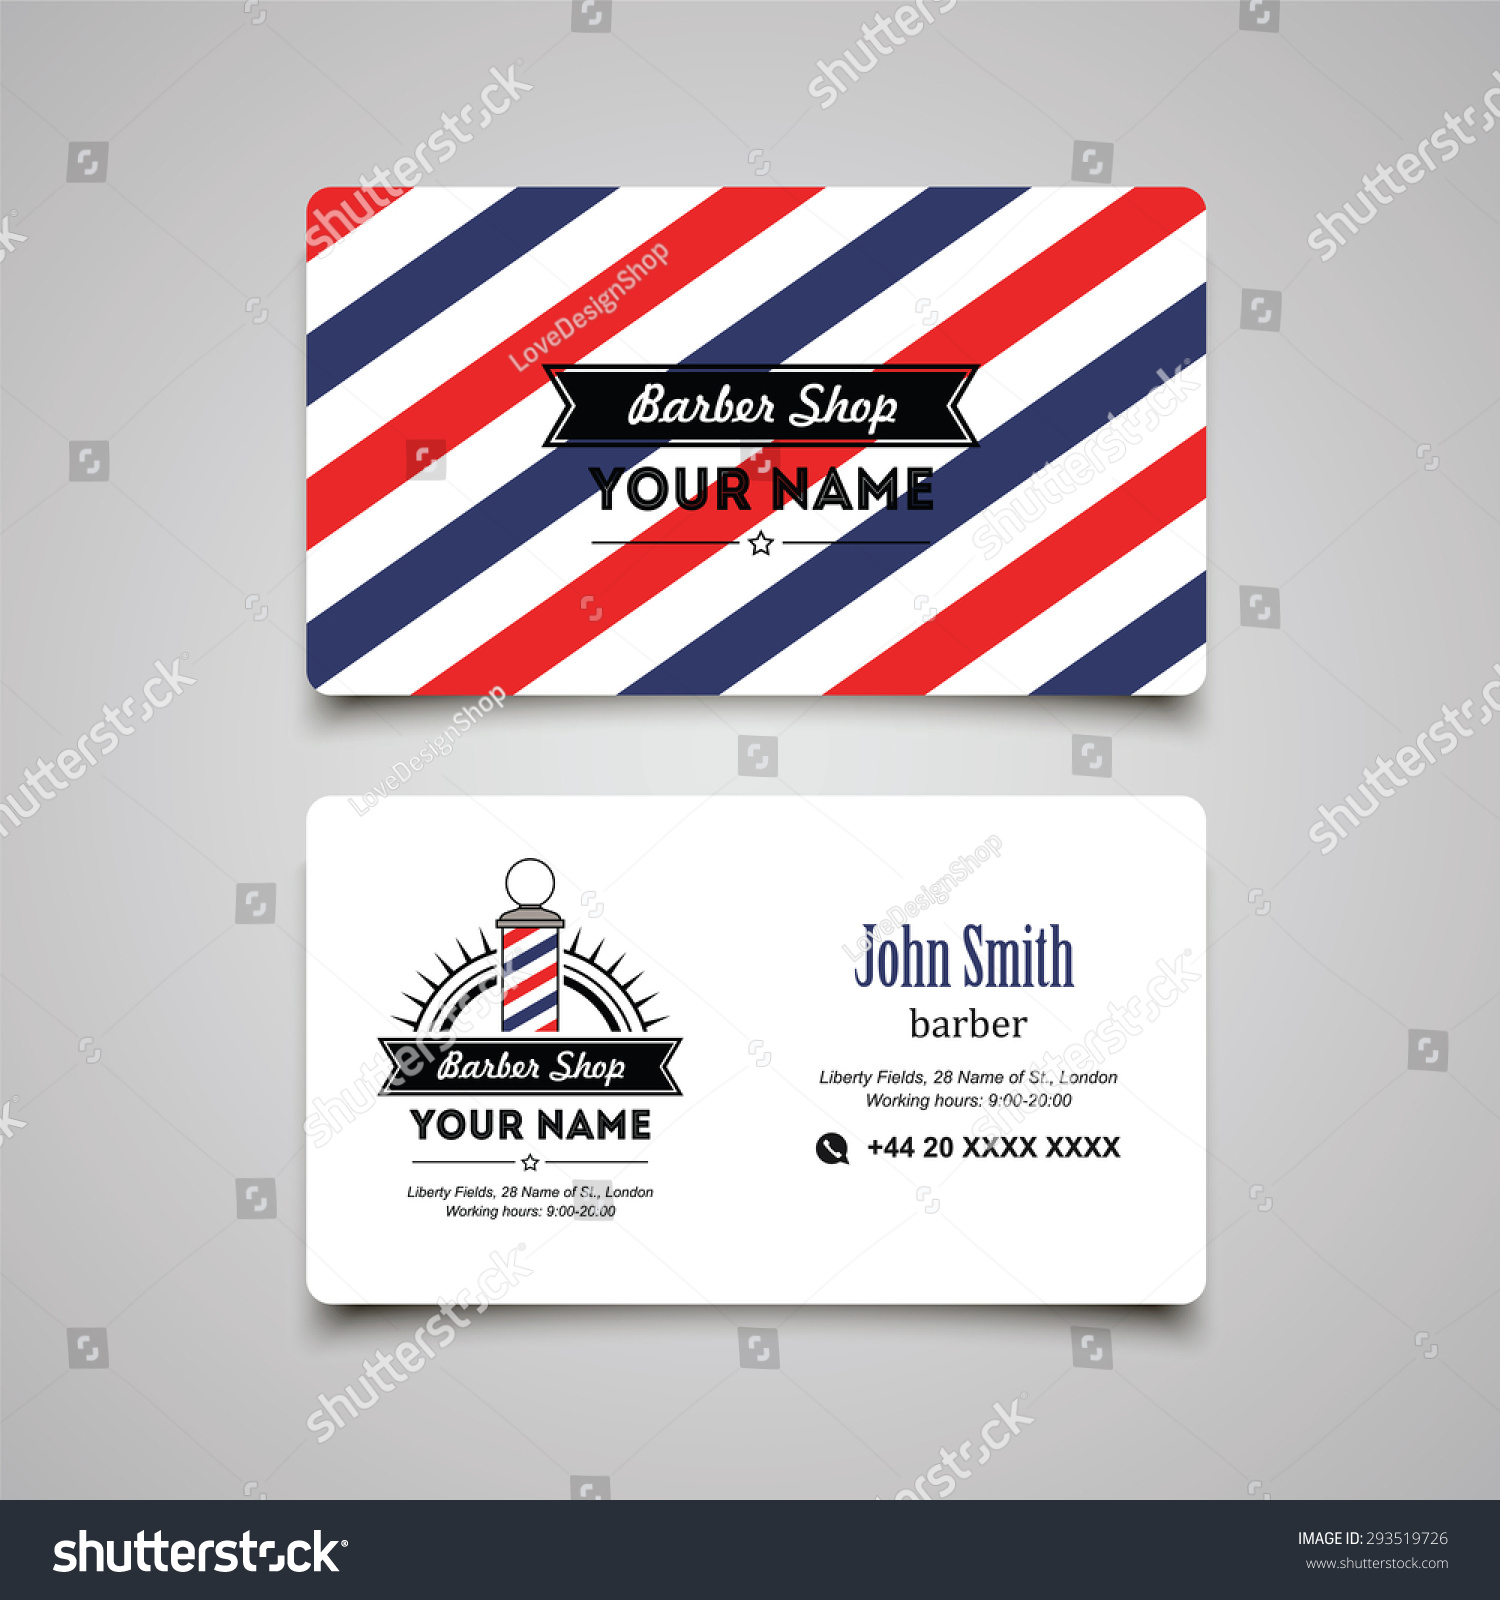 Hair salon barber shop business card stock vector royalty free hair salon barber shop business card design template fbccfo Images